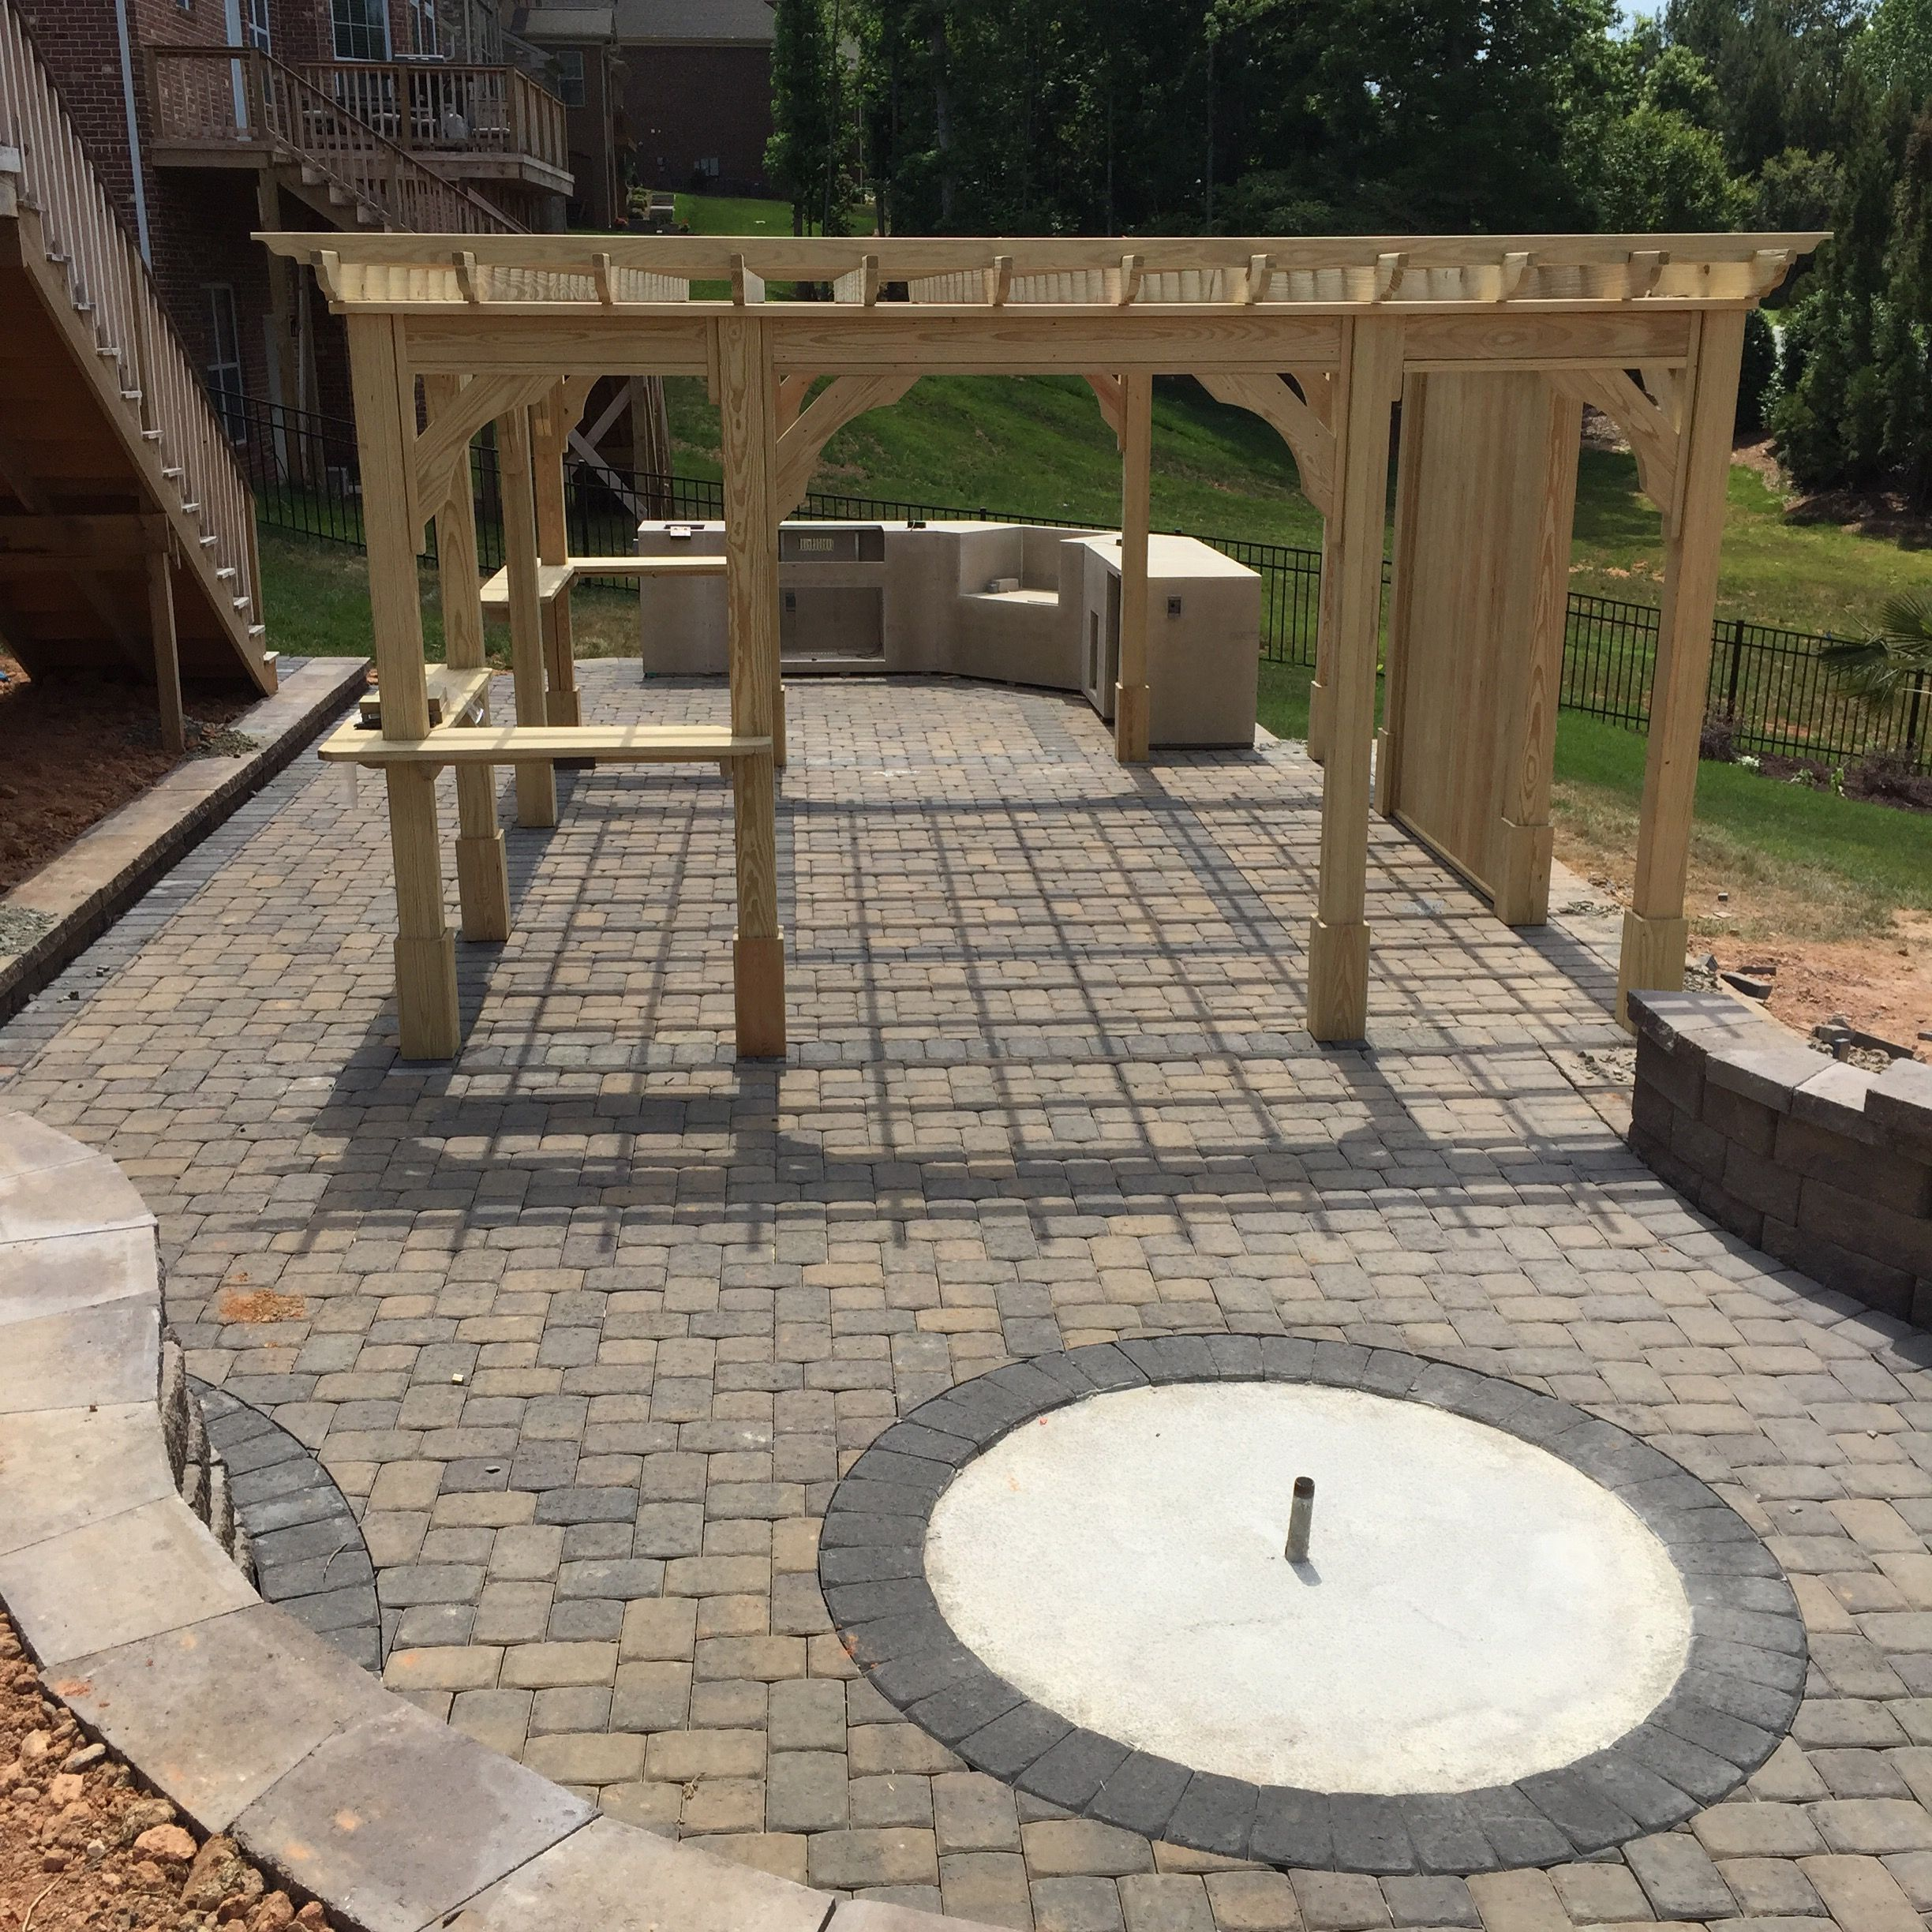 Paver patio retaining wall kitchen island have been installed